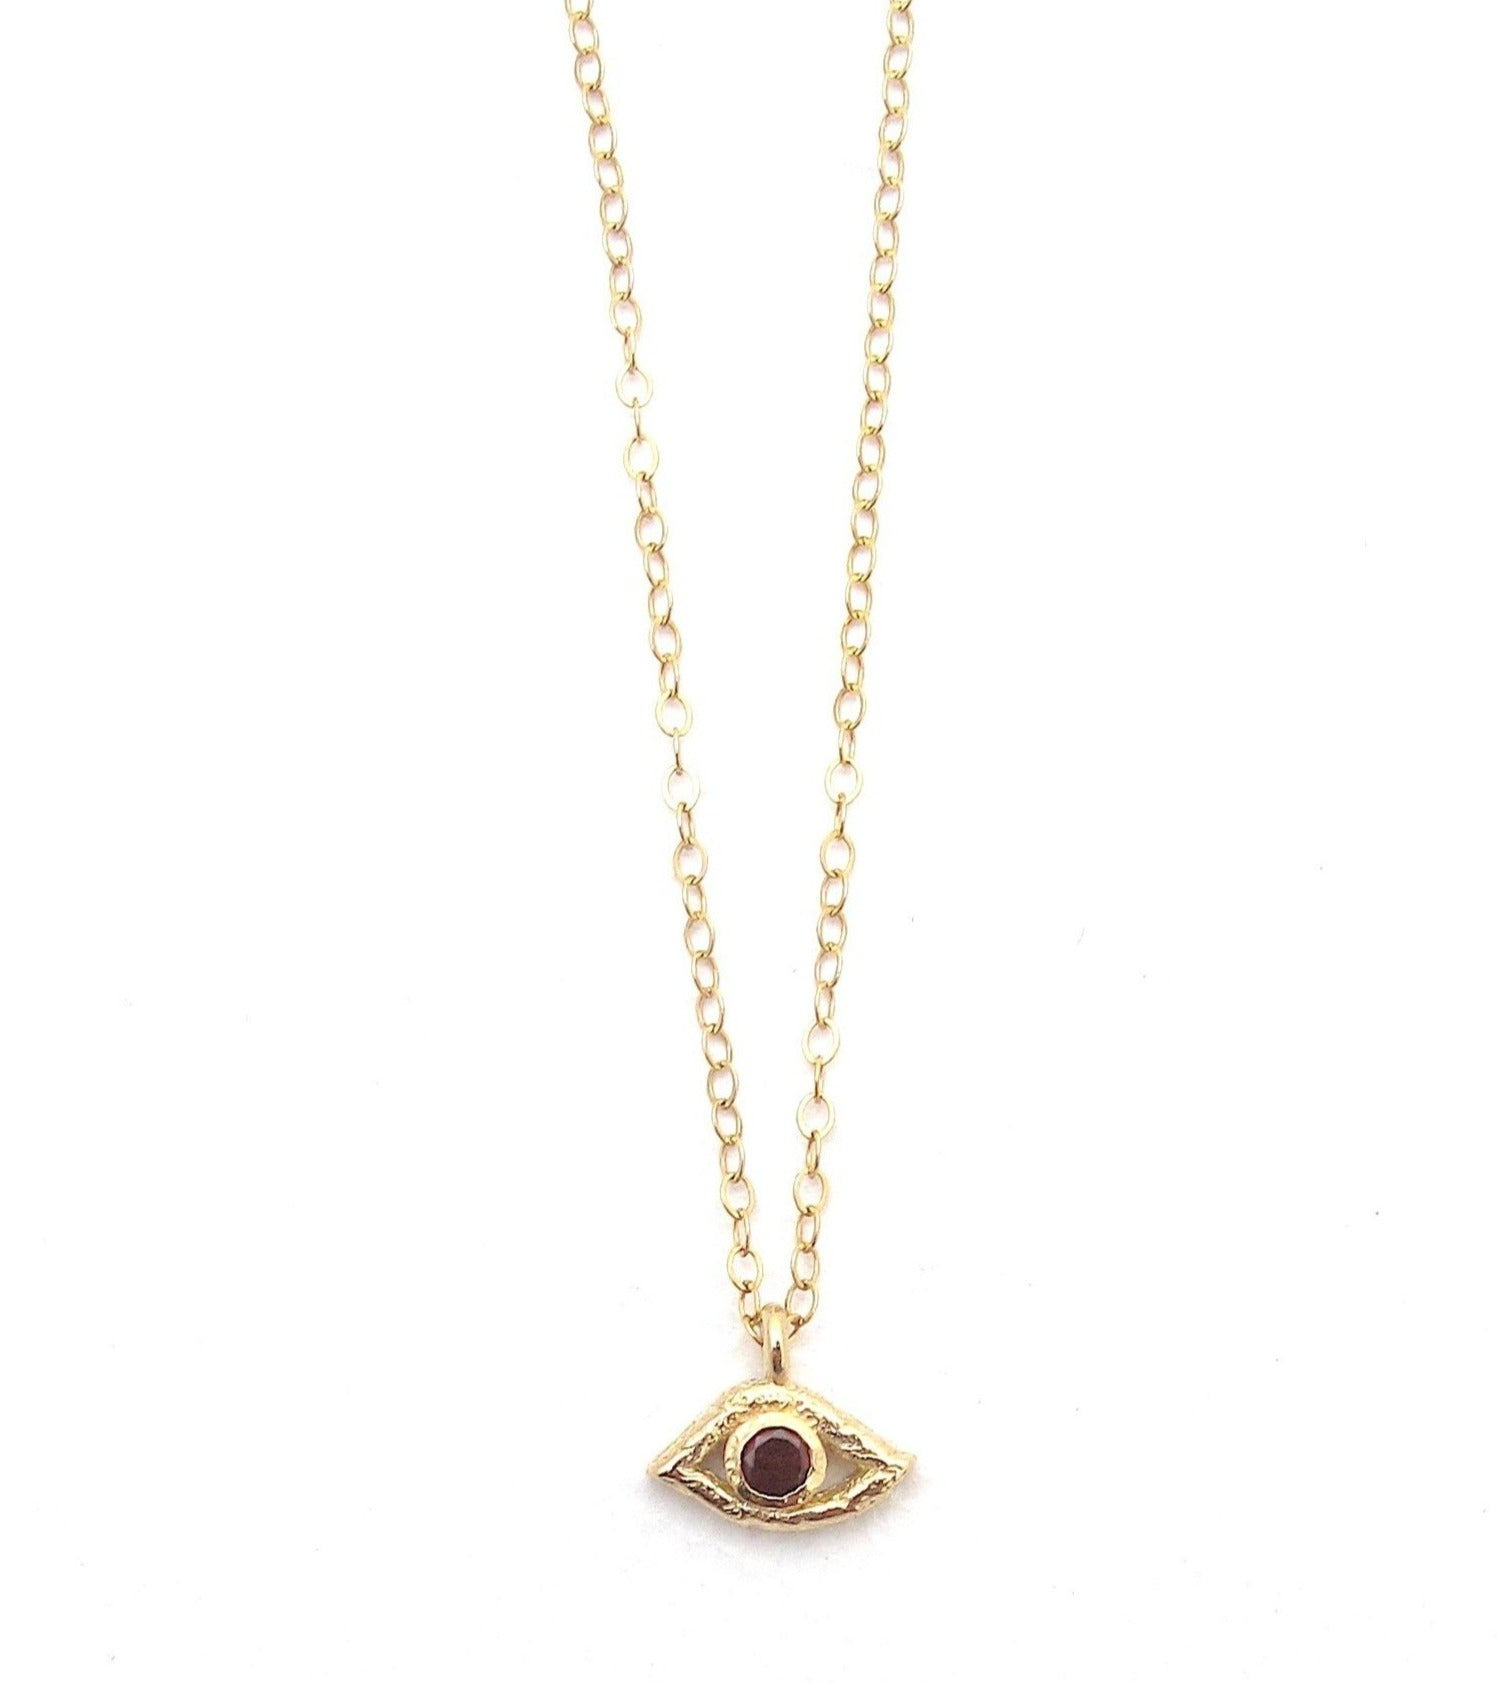 Eye pendant, garnet +more options